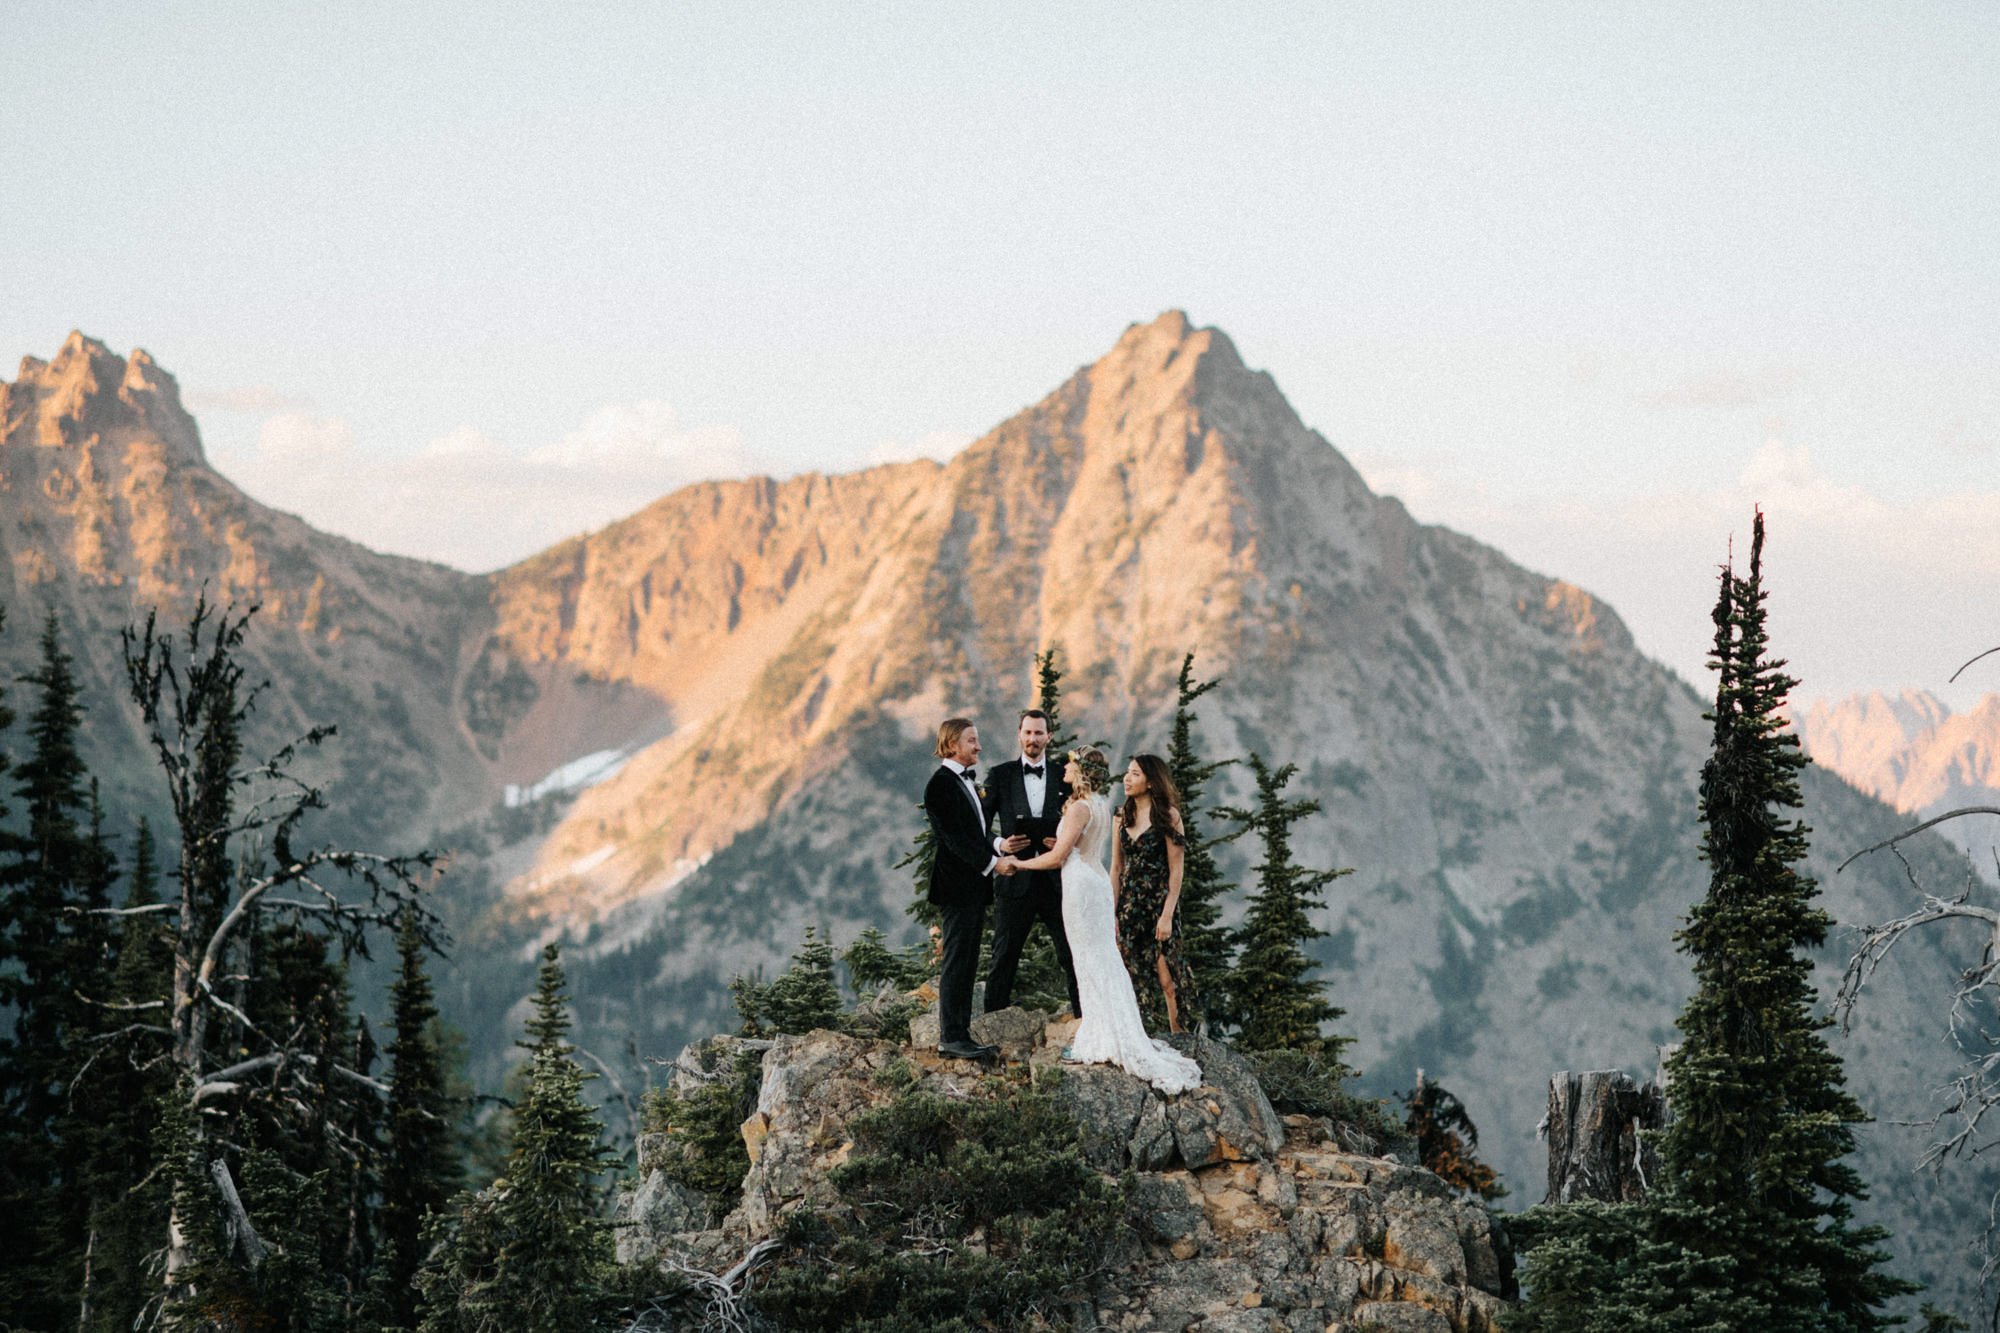 North Cascade mountaintop elopement - photo by Nick + Danee